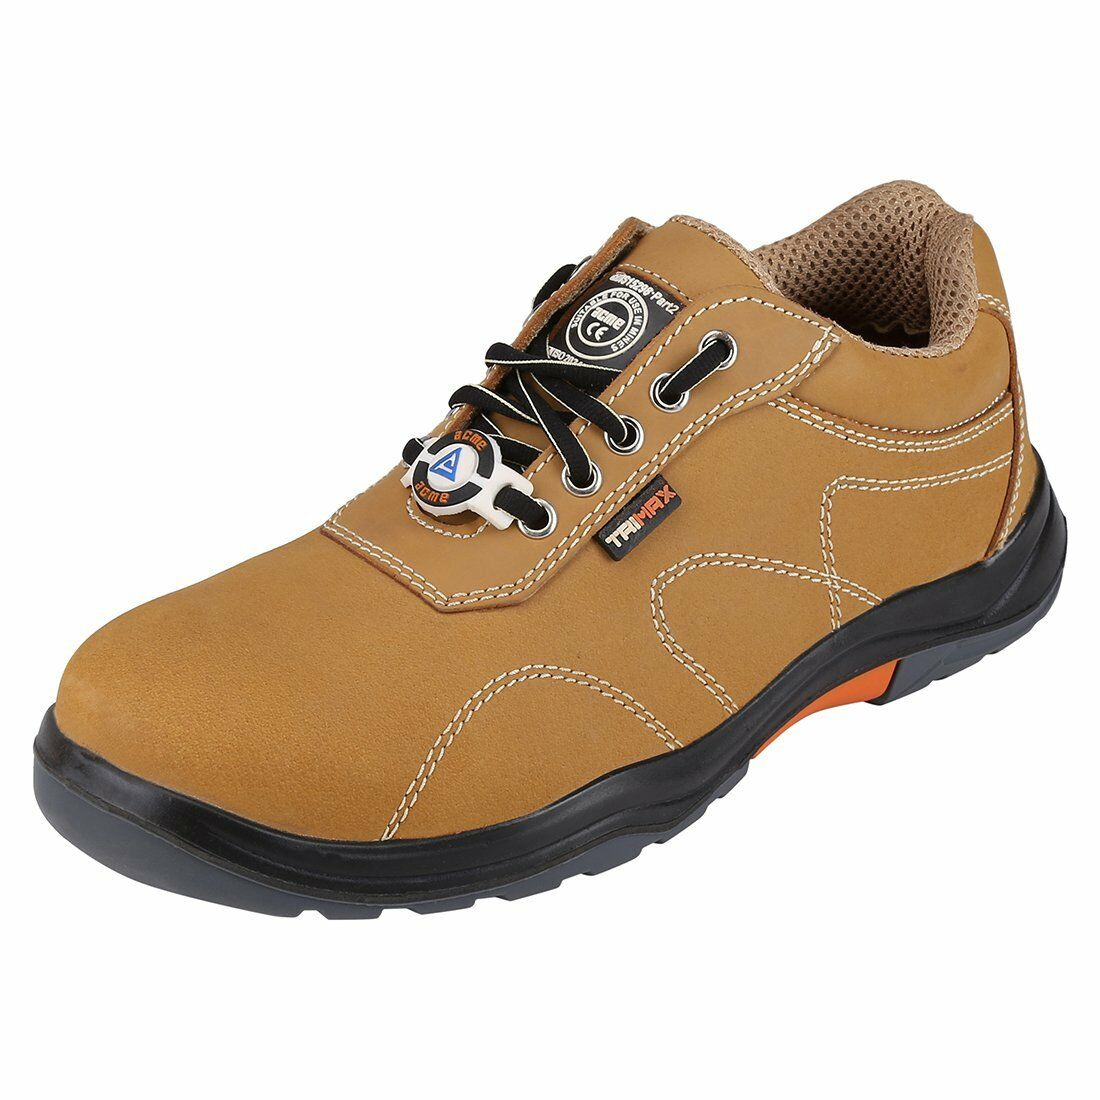 ACME LEATHER WORK SAFETY STEEL TOE CAP ANKLE MENS MENS MENS Größe Stiefel schuhe TRAINERS GIFT 86b769